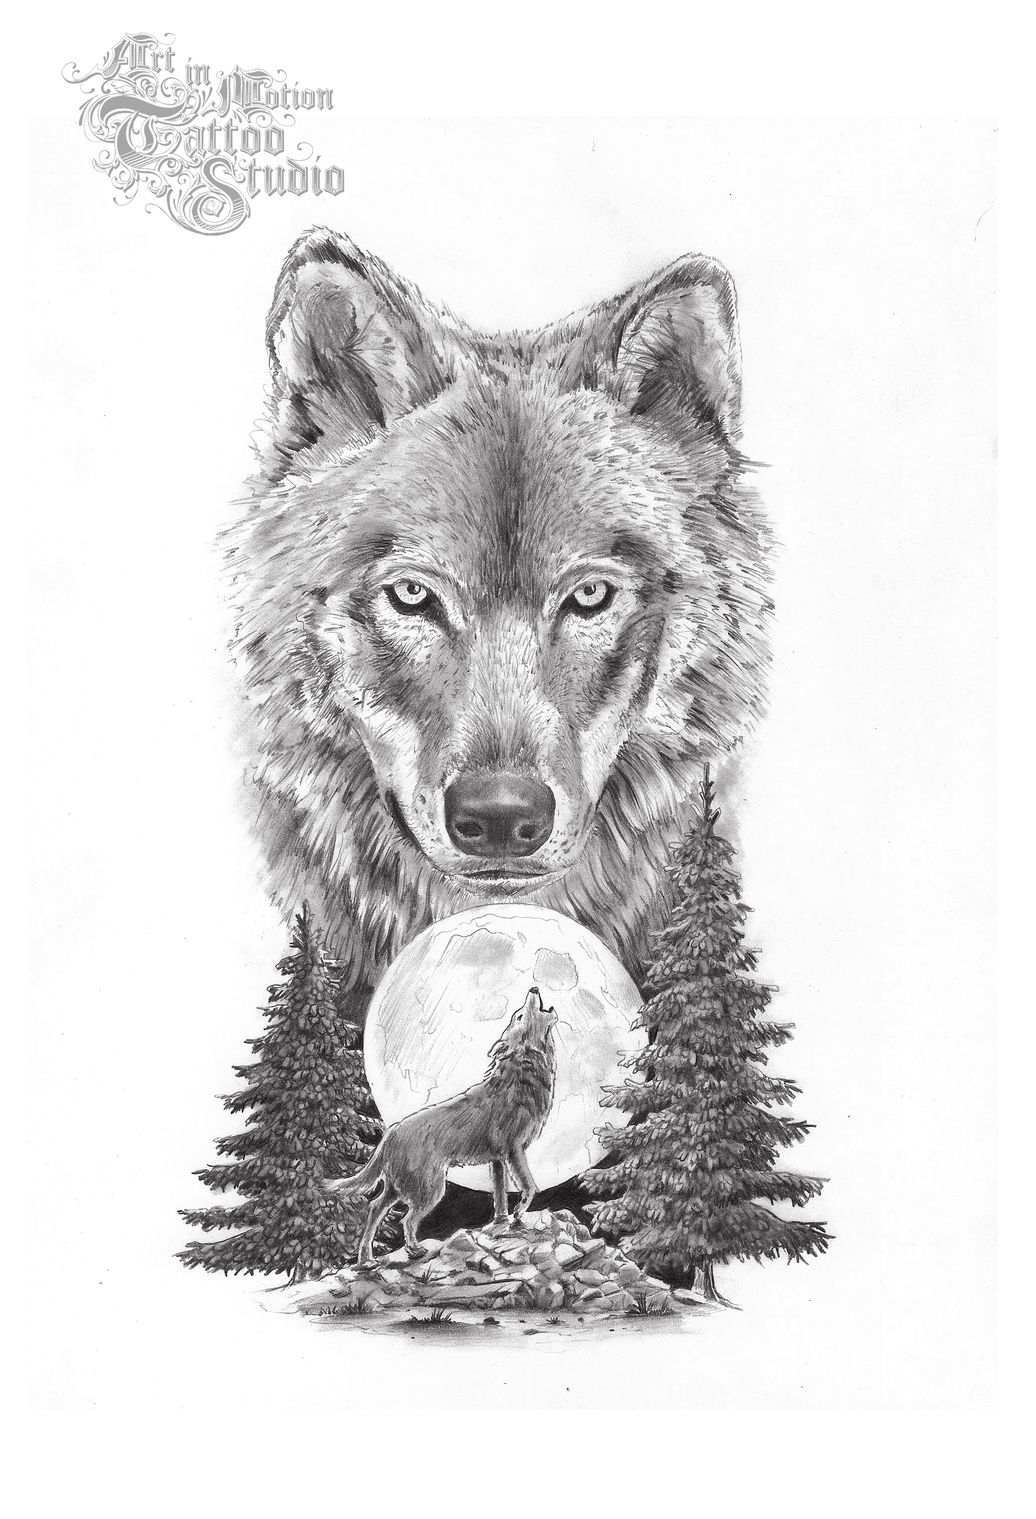 Wolf tattoo ideas wolf on upper arm | Tattoo Collection ...